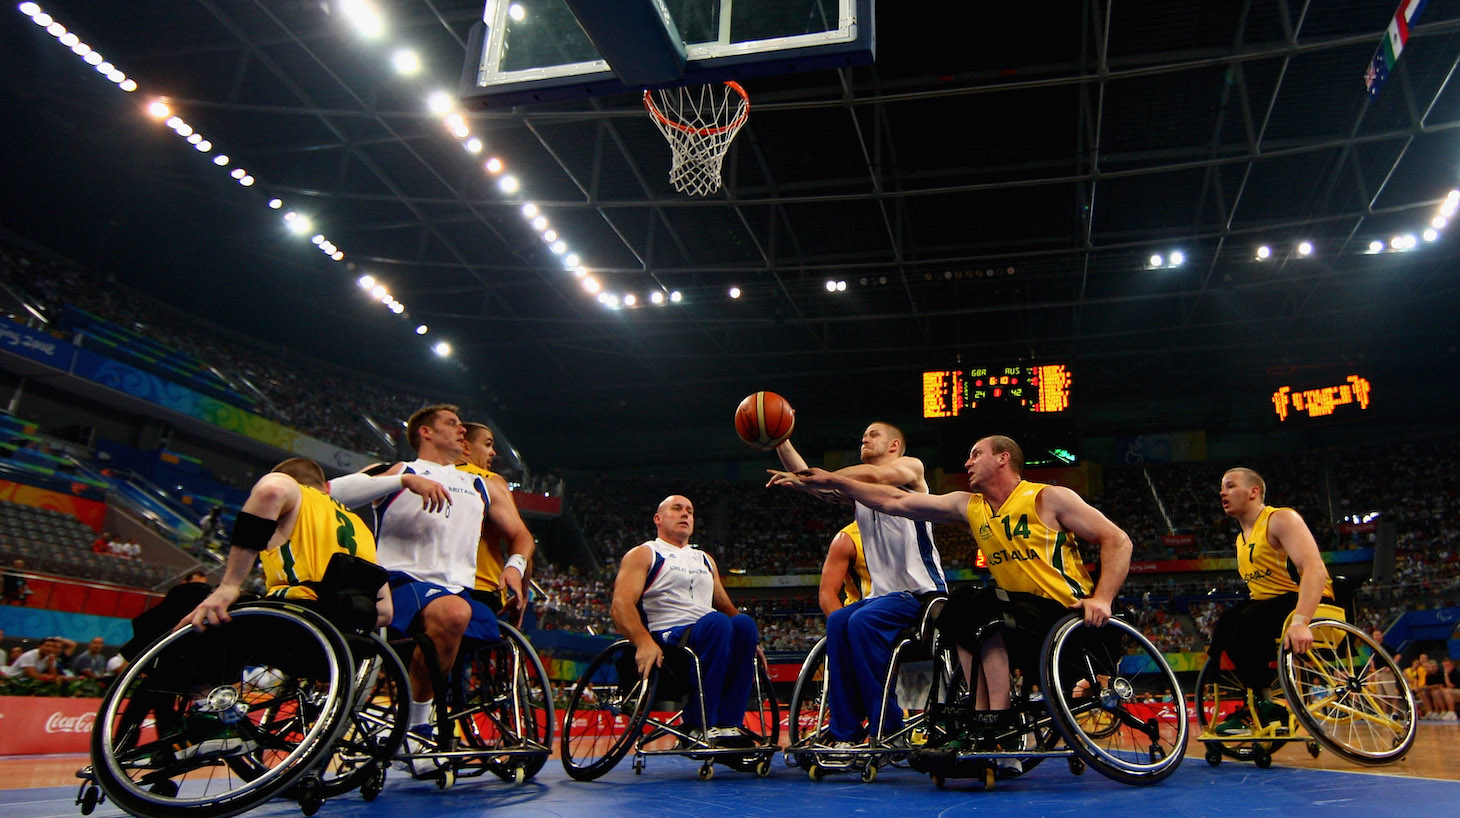 BEIJING - SEPTEMBER 14: Jonathan Hall of Great Britain battles with Brendan Dowler of Australia in the Wheelchair Basketball match between Australia and Great Britain at the National Indoor Stadium during day eight of the 2008 Paralympic Games September 14, 2008 in Beijing, China. (Photo by Jamie McDonald/Getty Images)